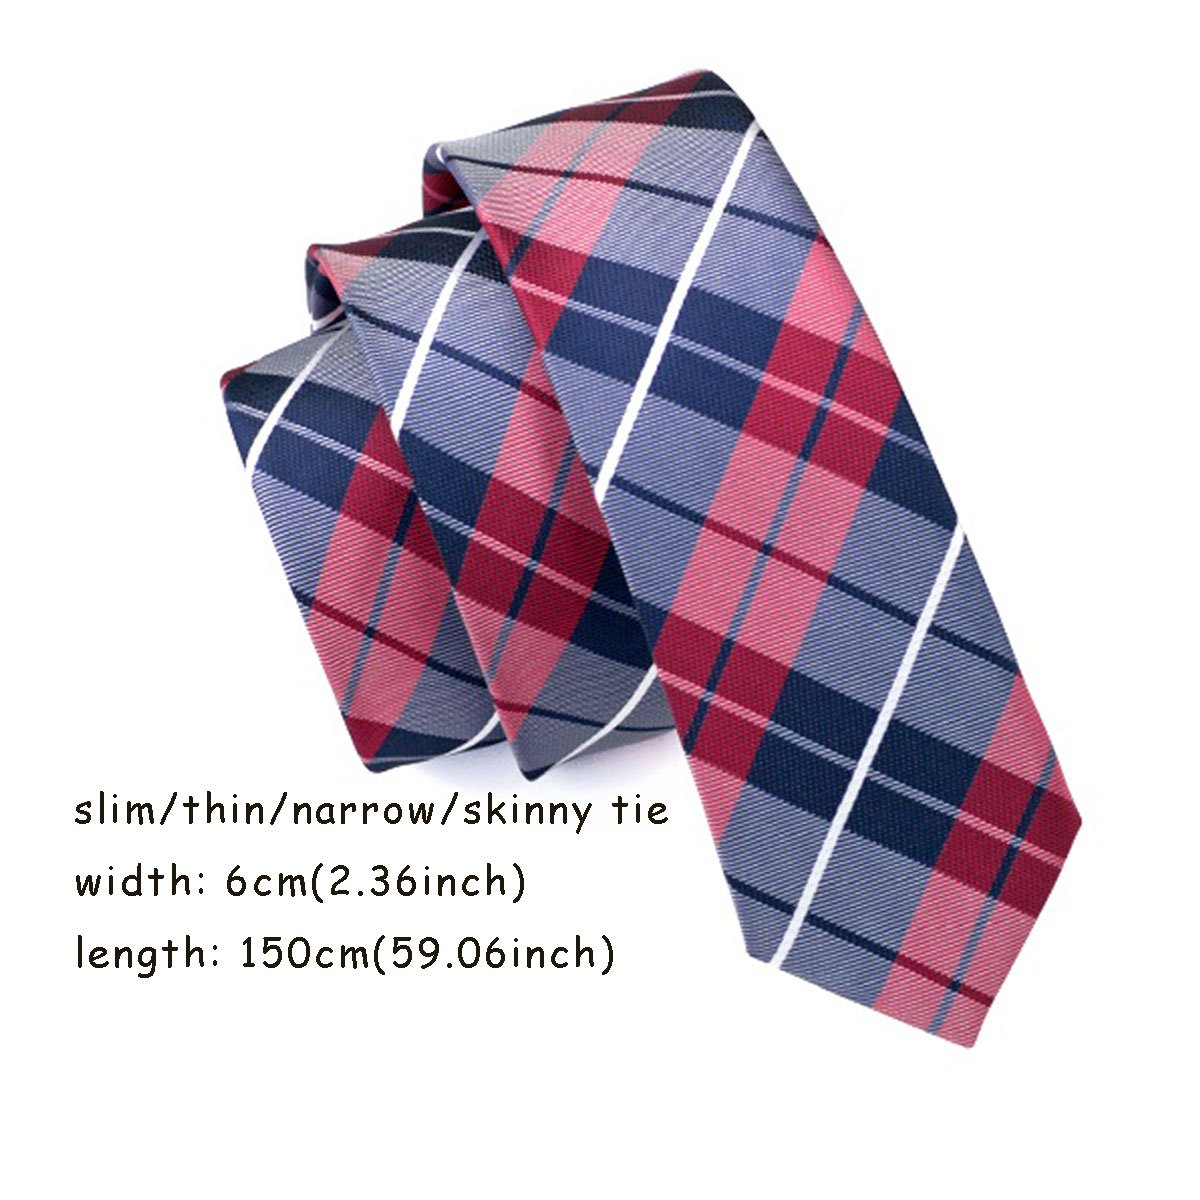 ef70ed196884 Dubulle Offer Mens Ties with Different Patterns and Colors,Paisley Ties,  Plaid Ties, Stripe Ties, Solid Color Ties. Also We Have Extra Long Ties and  Narrow ...